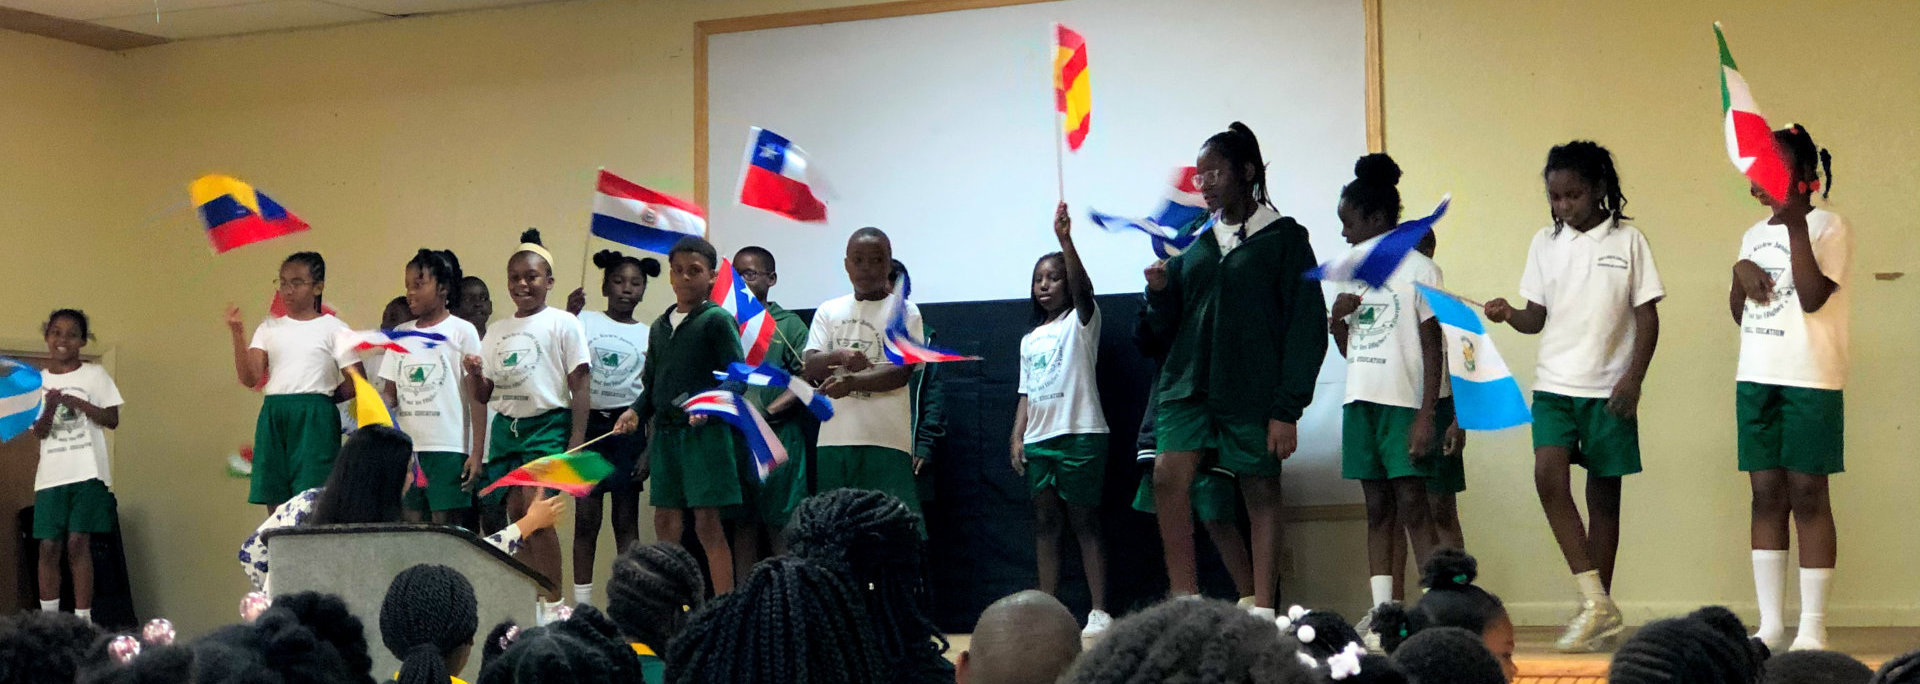 students holding a flag